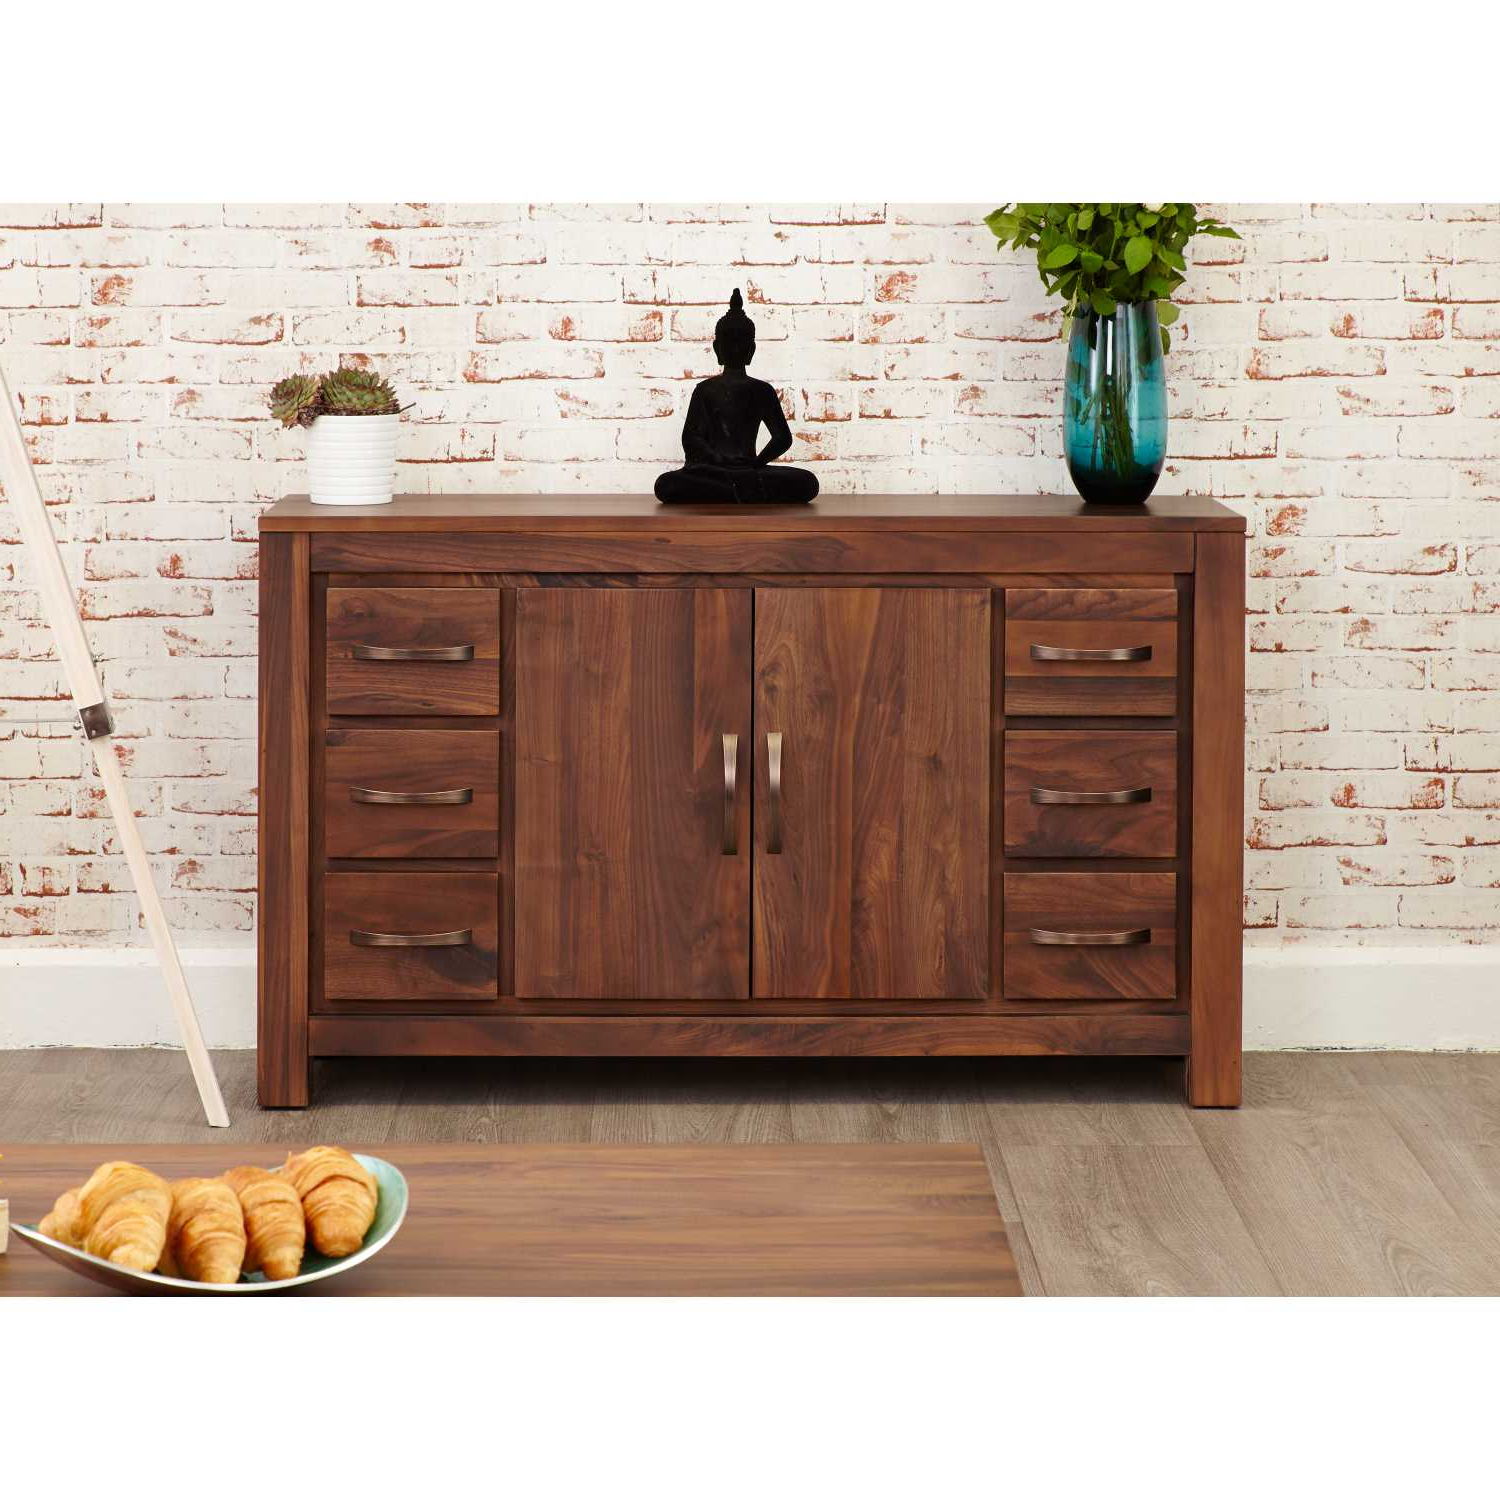 """Widely Used Solid Walnut Sideboard Large Wide With 6 Drawers 2 Doors With Miruna 63"""" Wide Wood Sideboards (View 5 of 20)"""